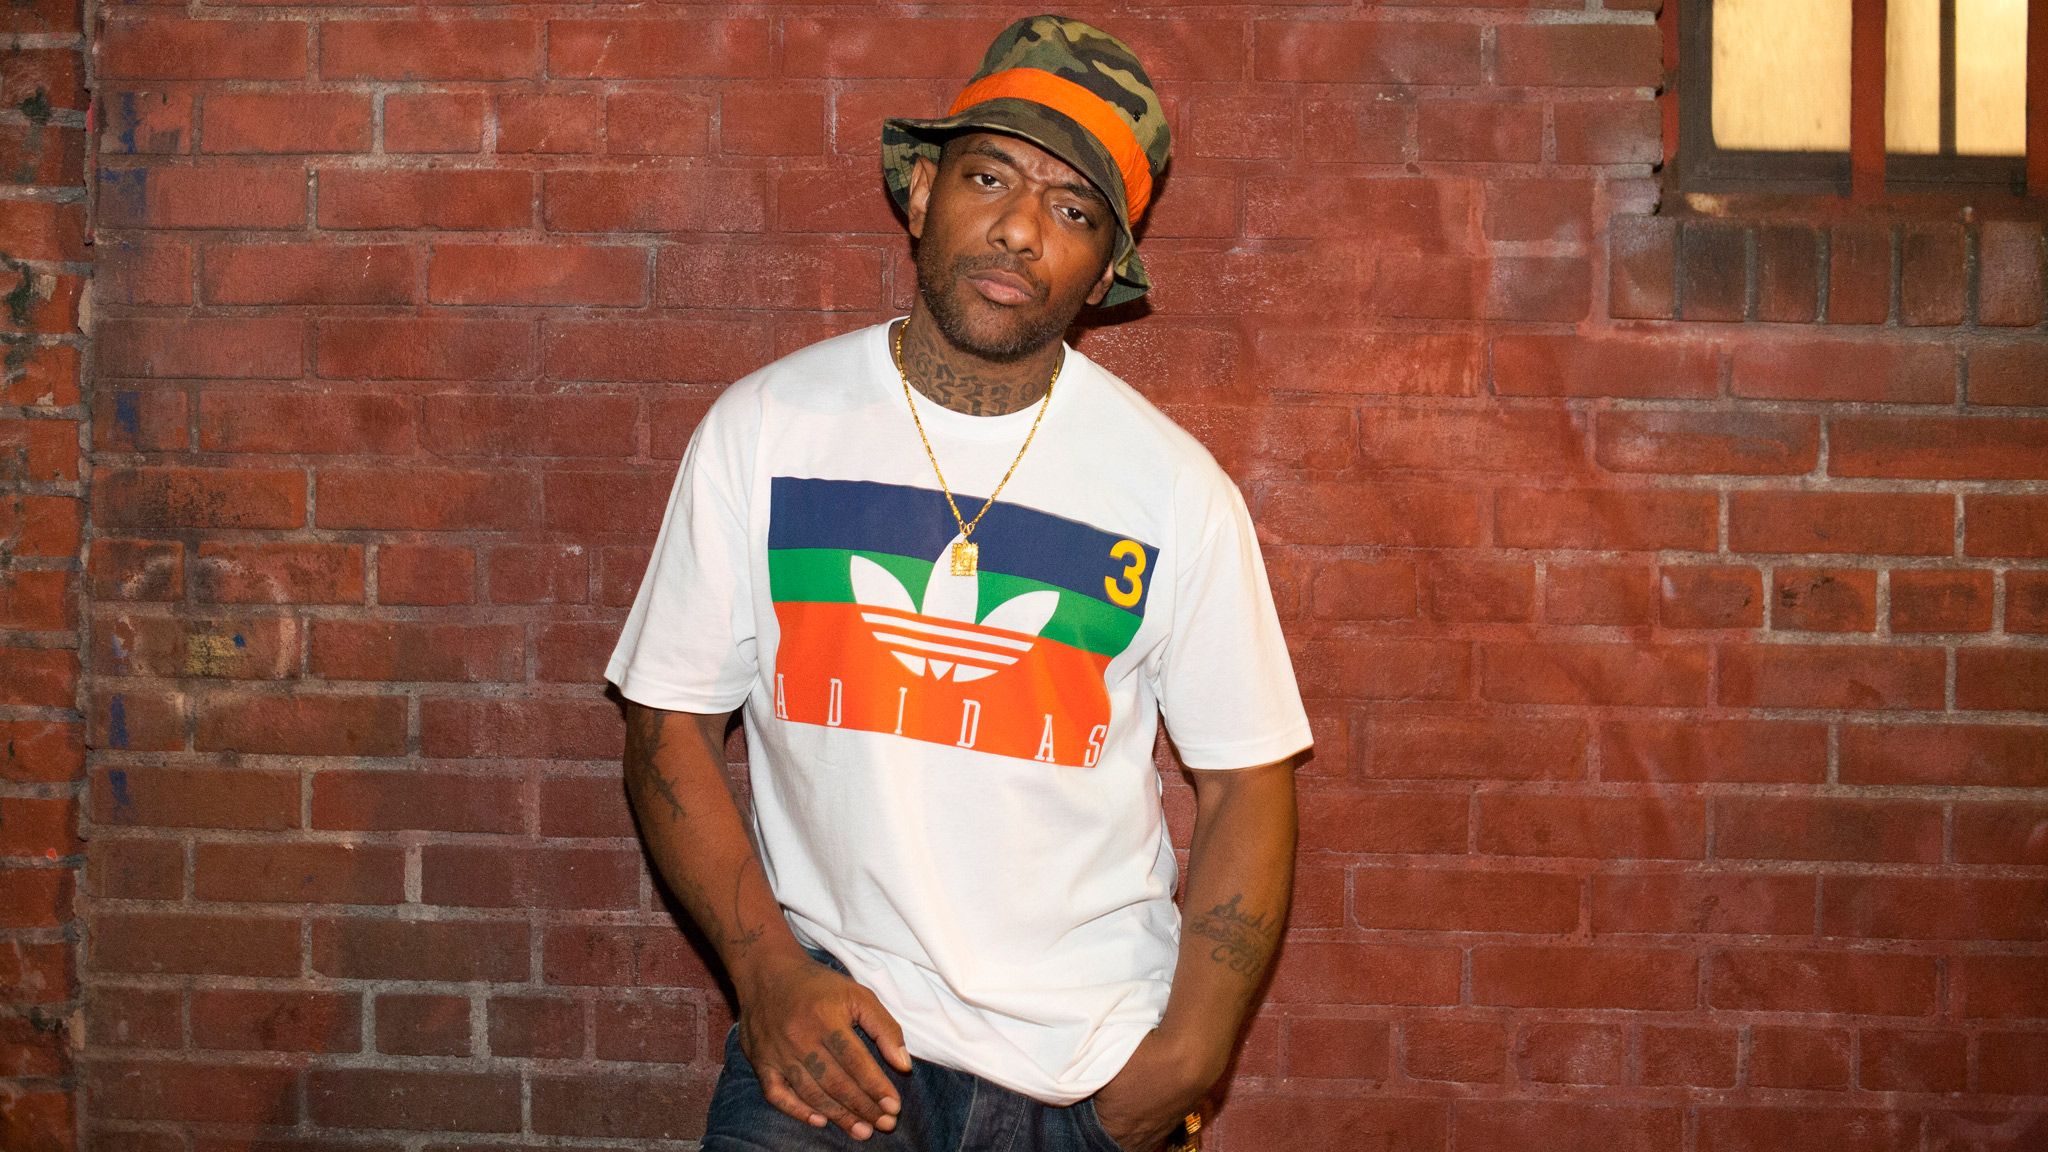 Mobb Deep Prodigy Rip Mobb Deep Rapper Prodigy Has Died At The Age Of 42 Vanyaland